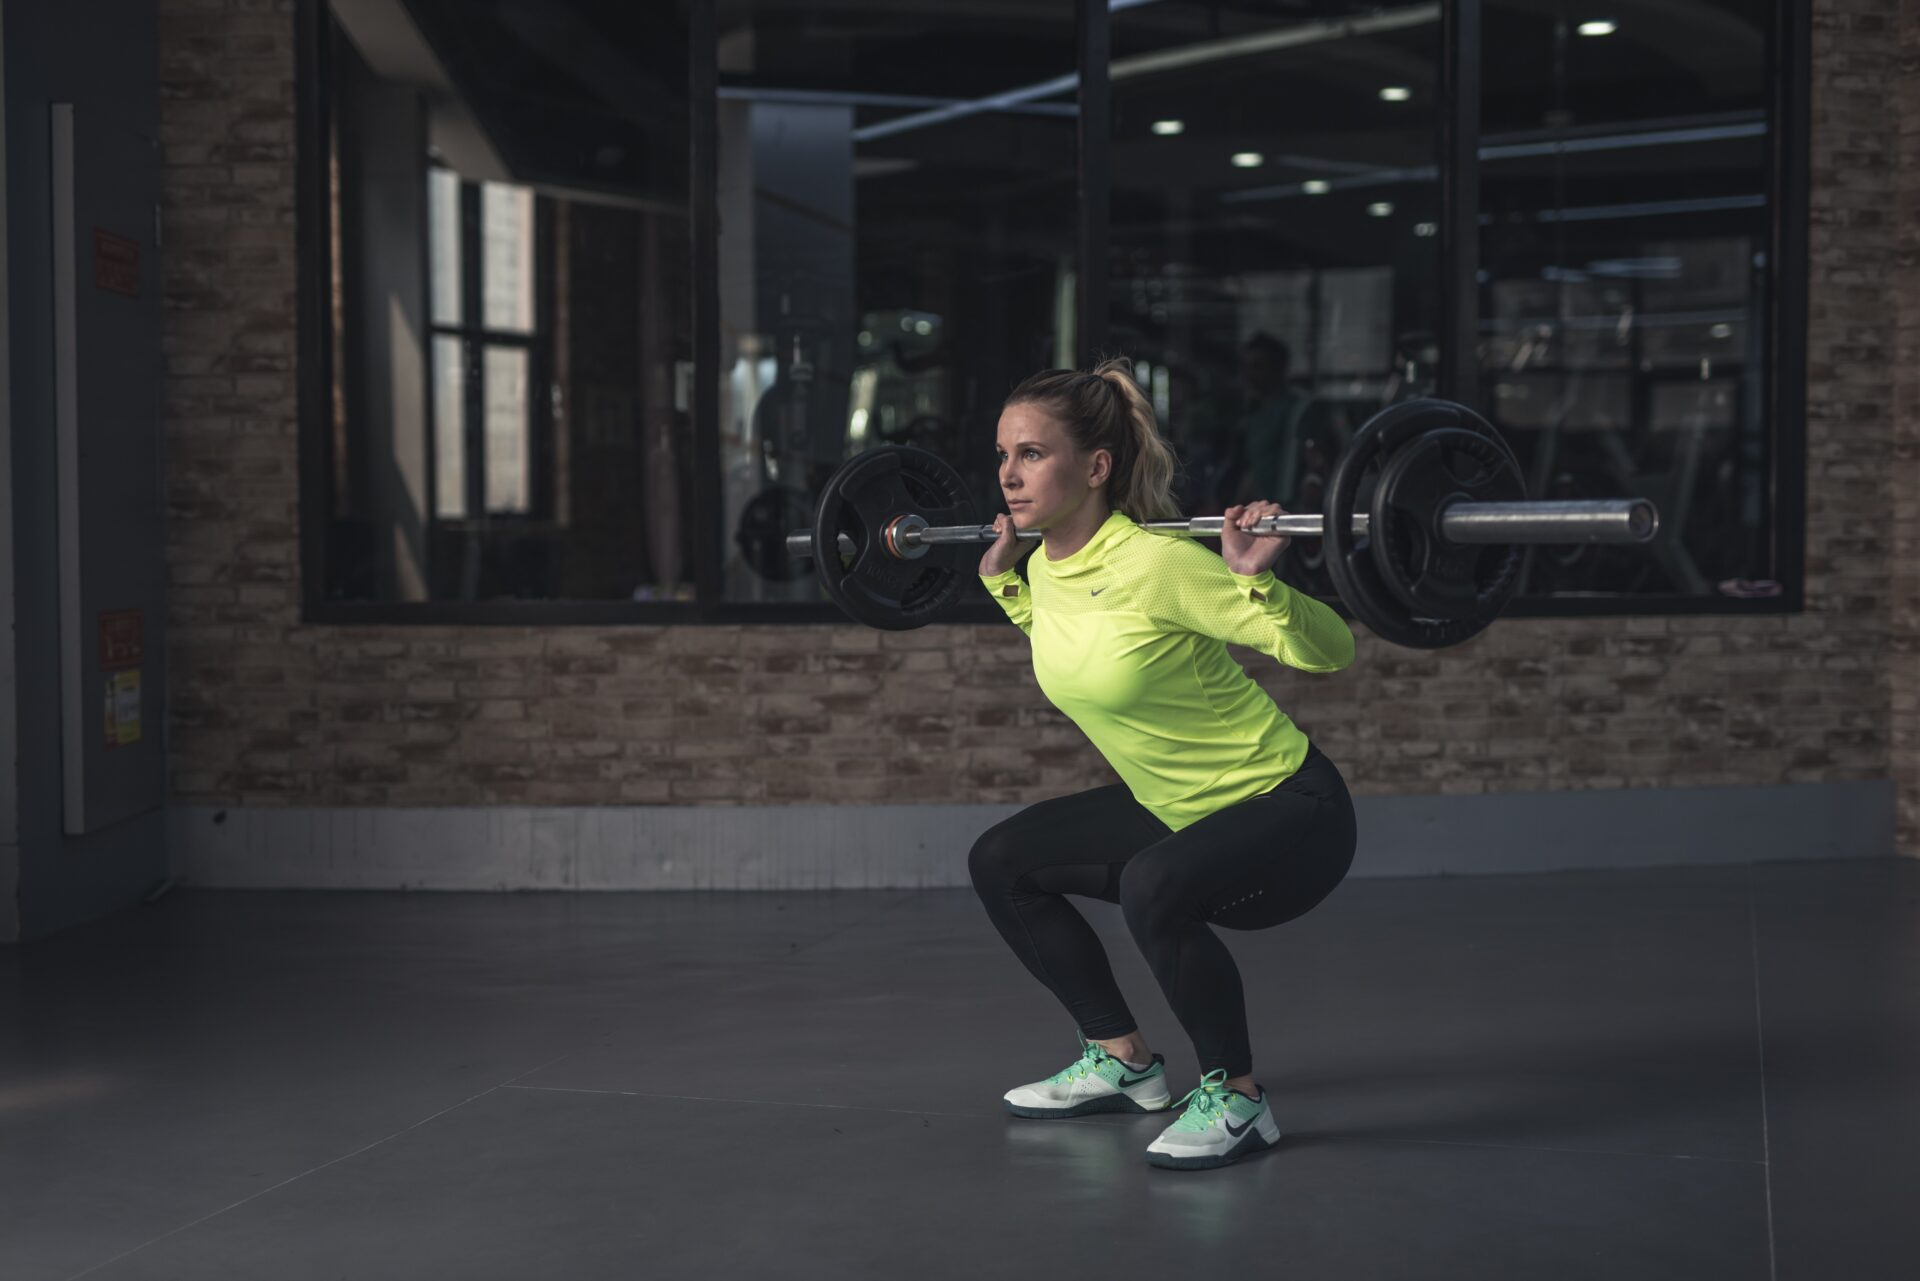 Woman Lifting Barbell in a squat position. Wearing a fluro yellow jumper and black leggings